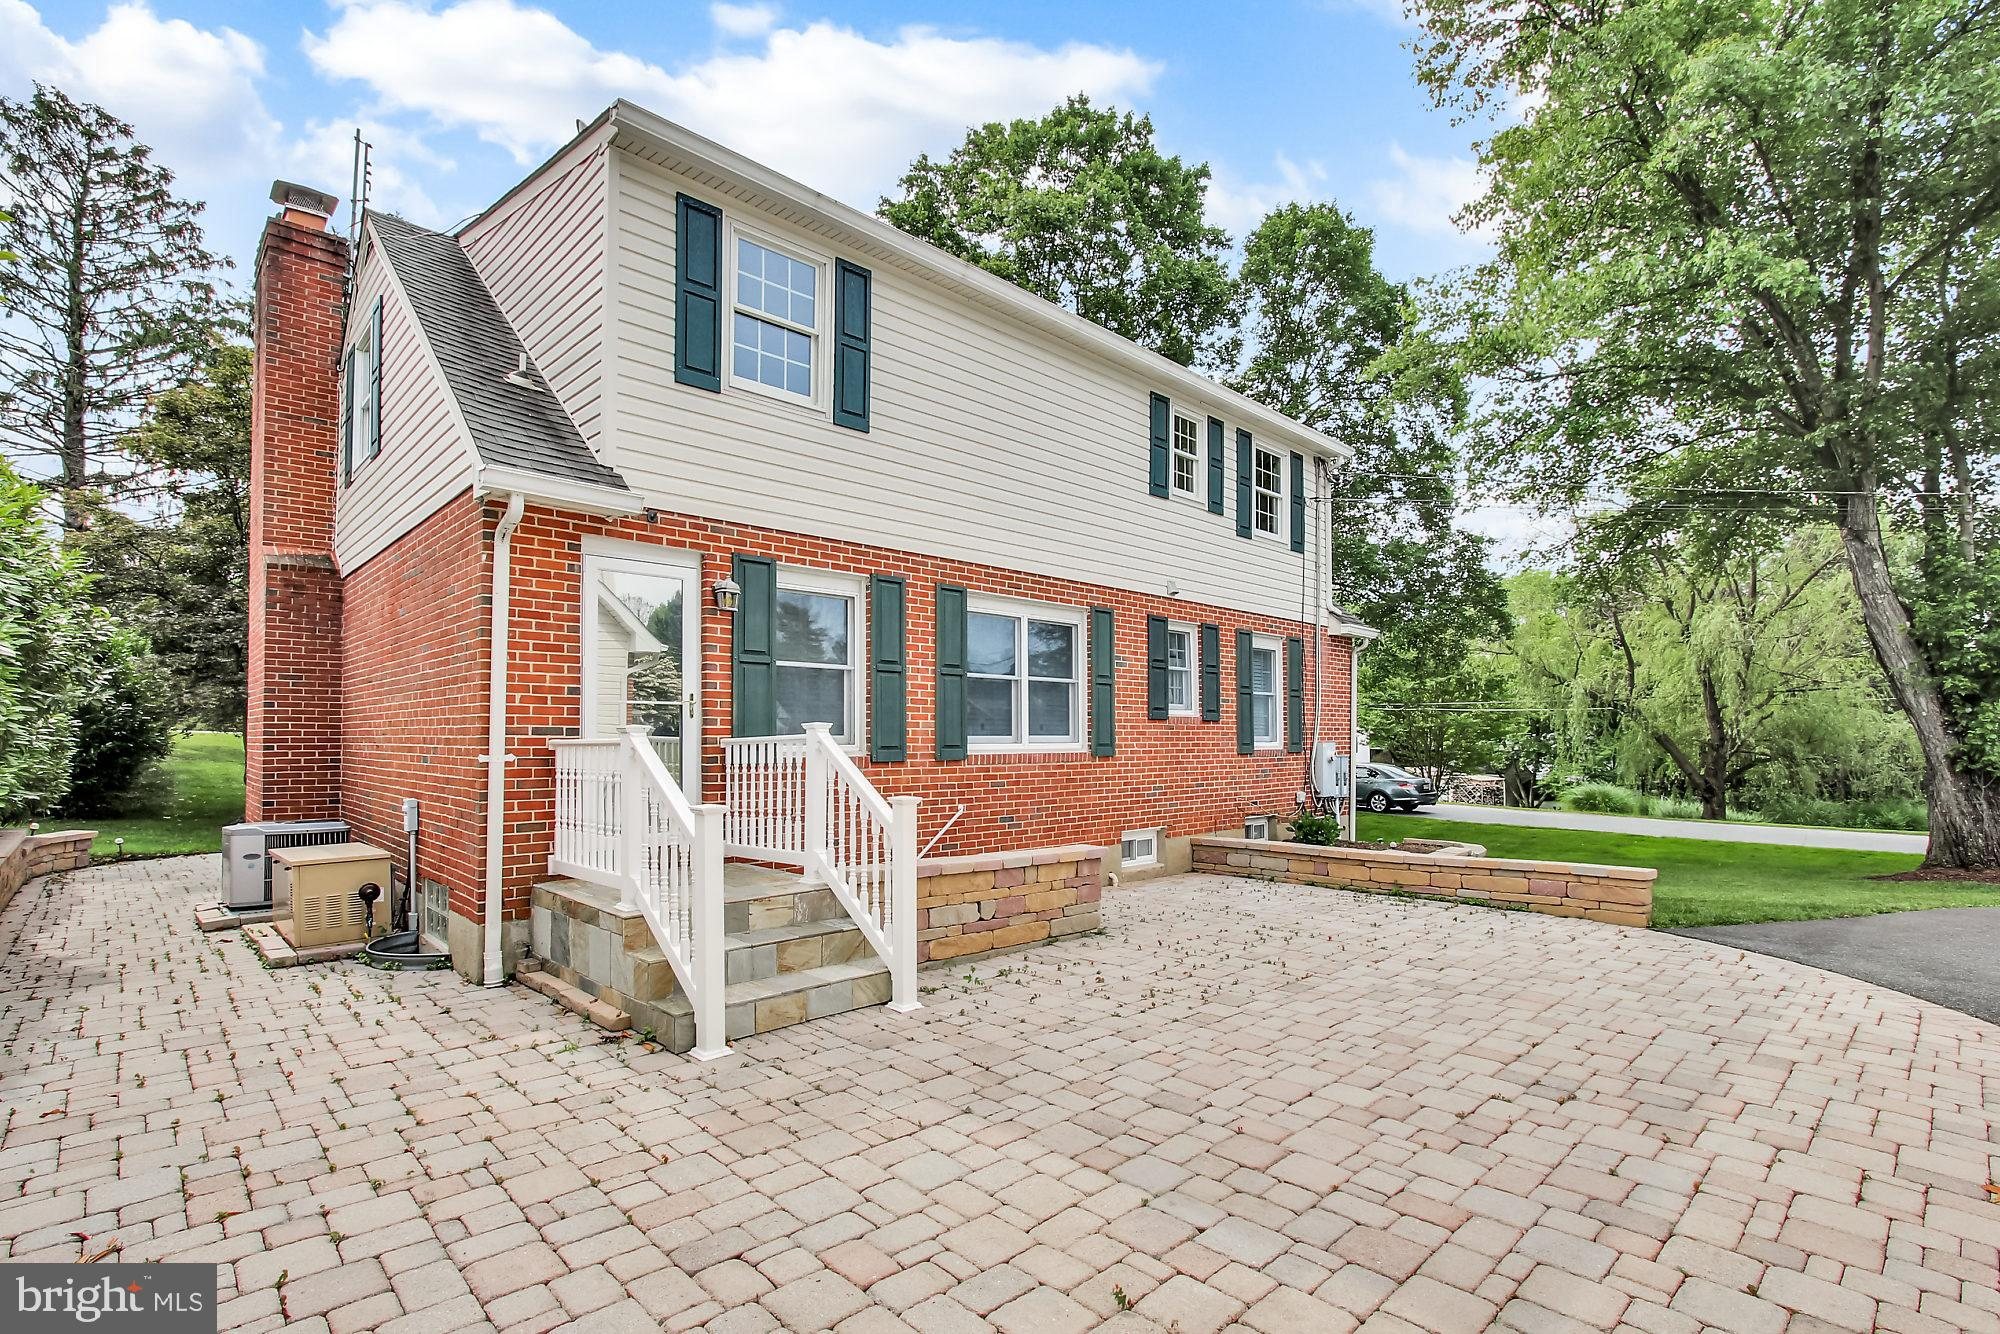 12300 MANOR ROAD, GLEN ARM, MD 21057